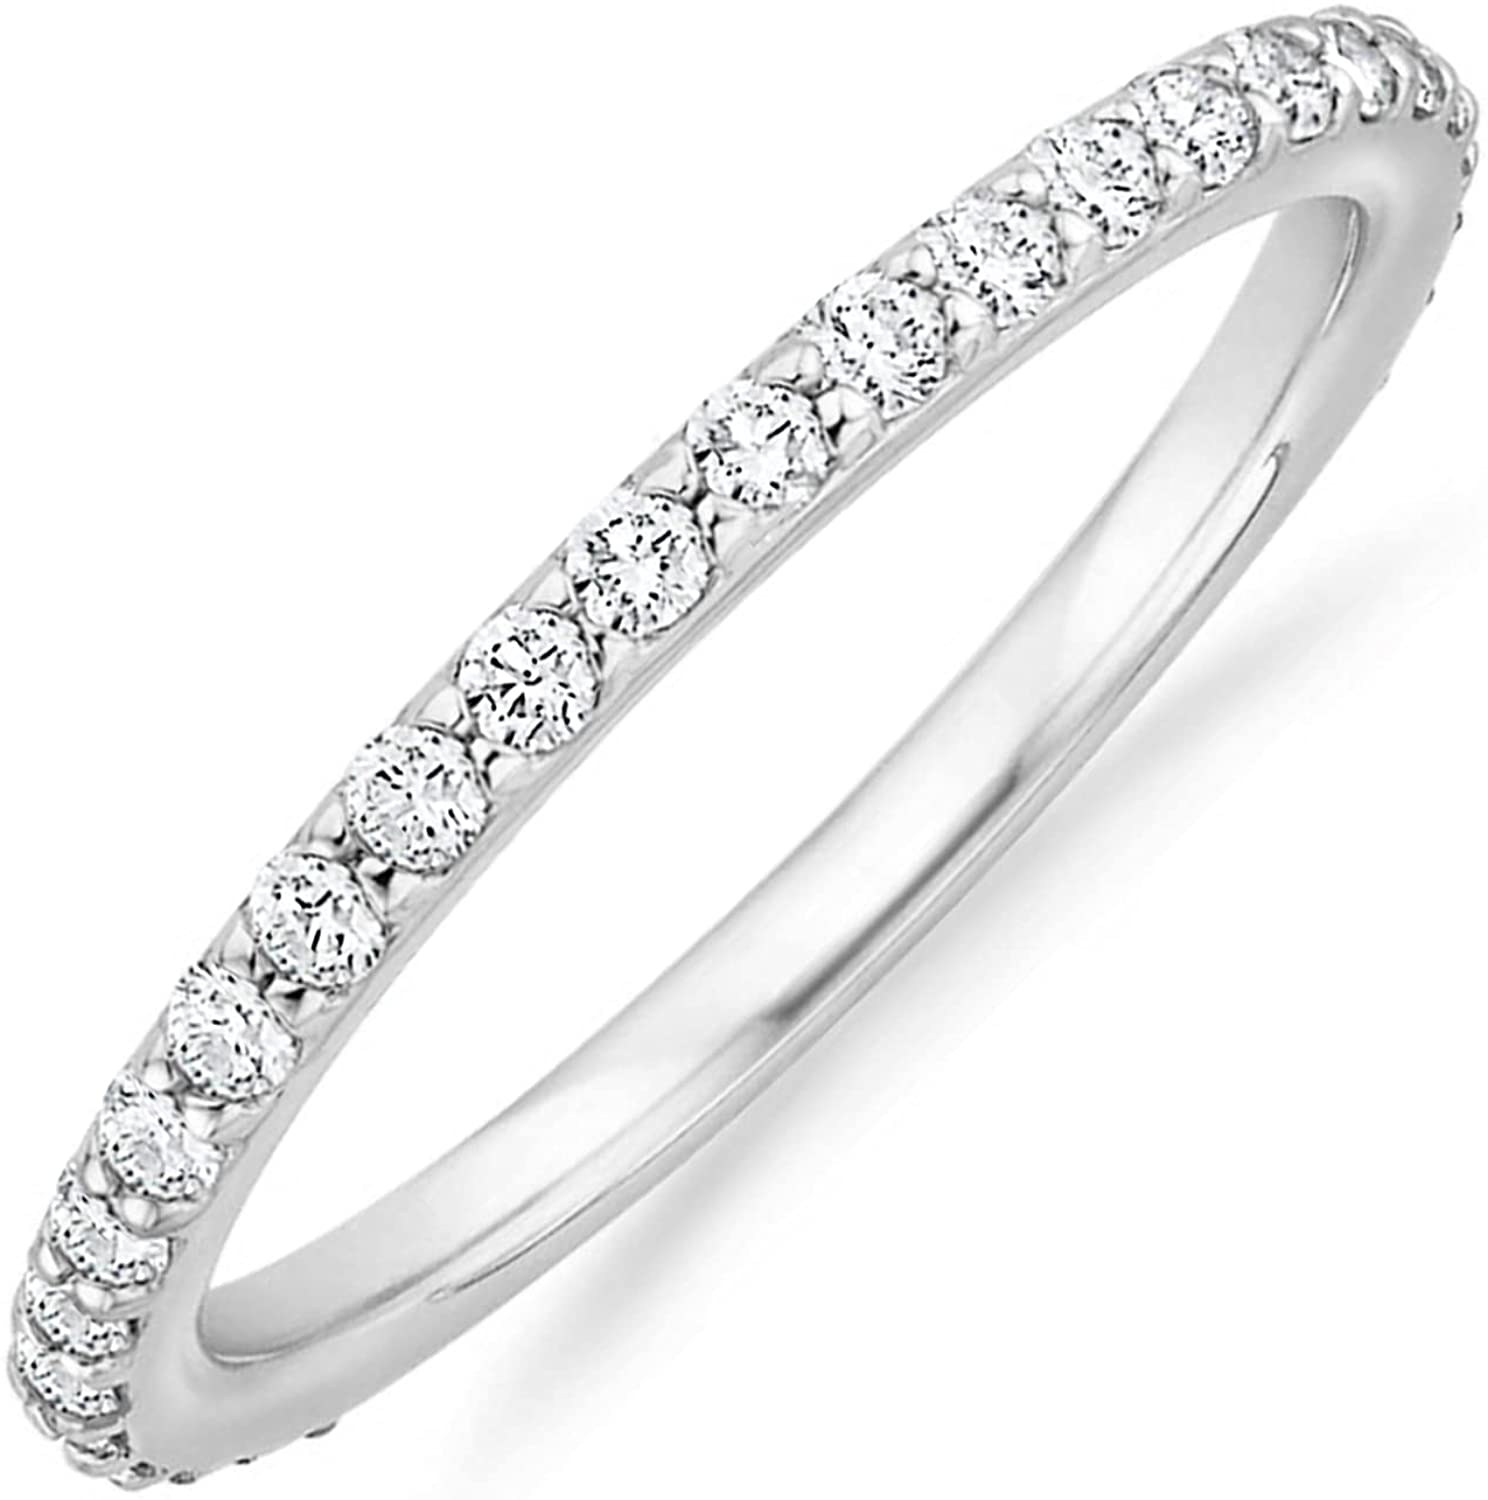 PAVOI 14K Gold Plated Cubic Zirconia Diamond Stackable Eternity Bands for Women